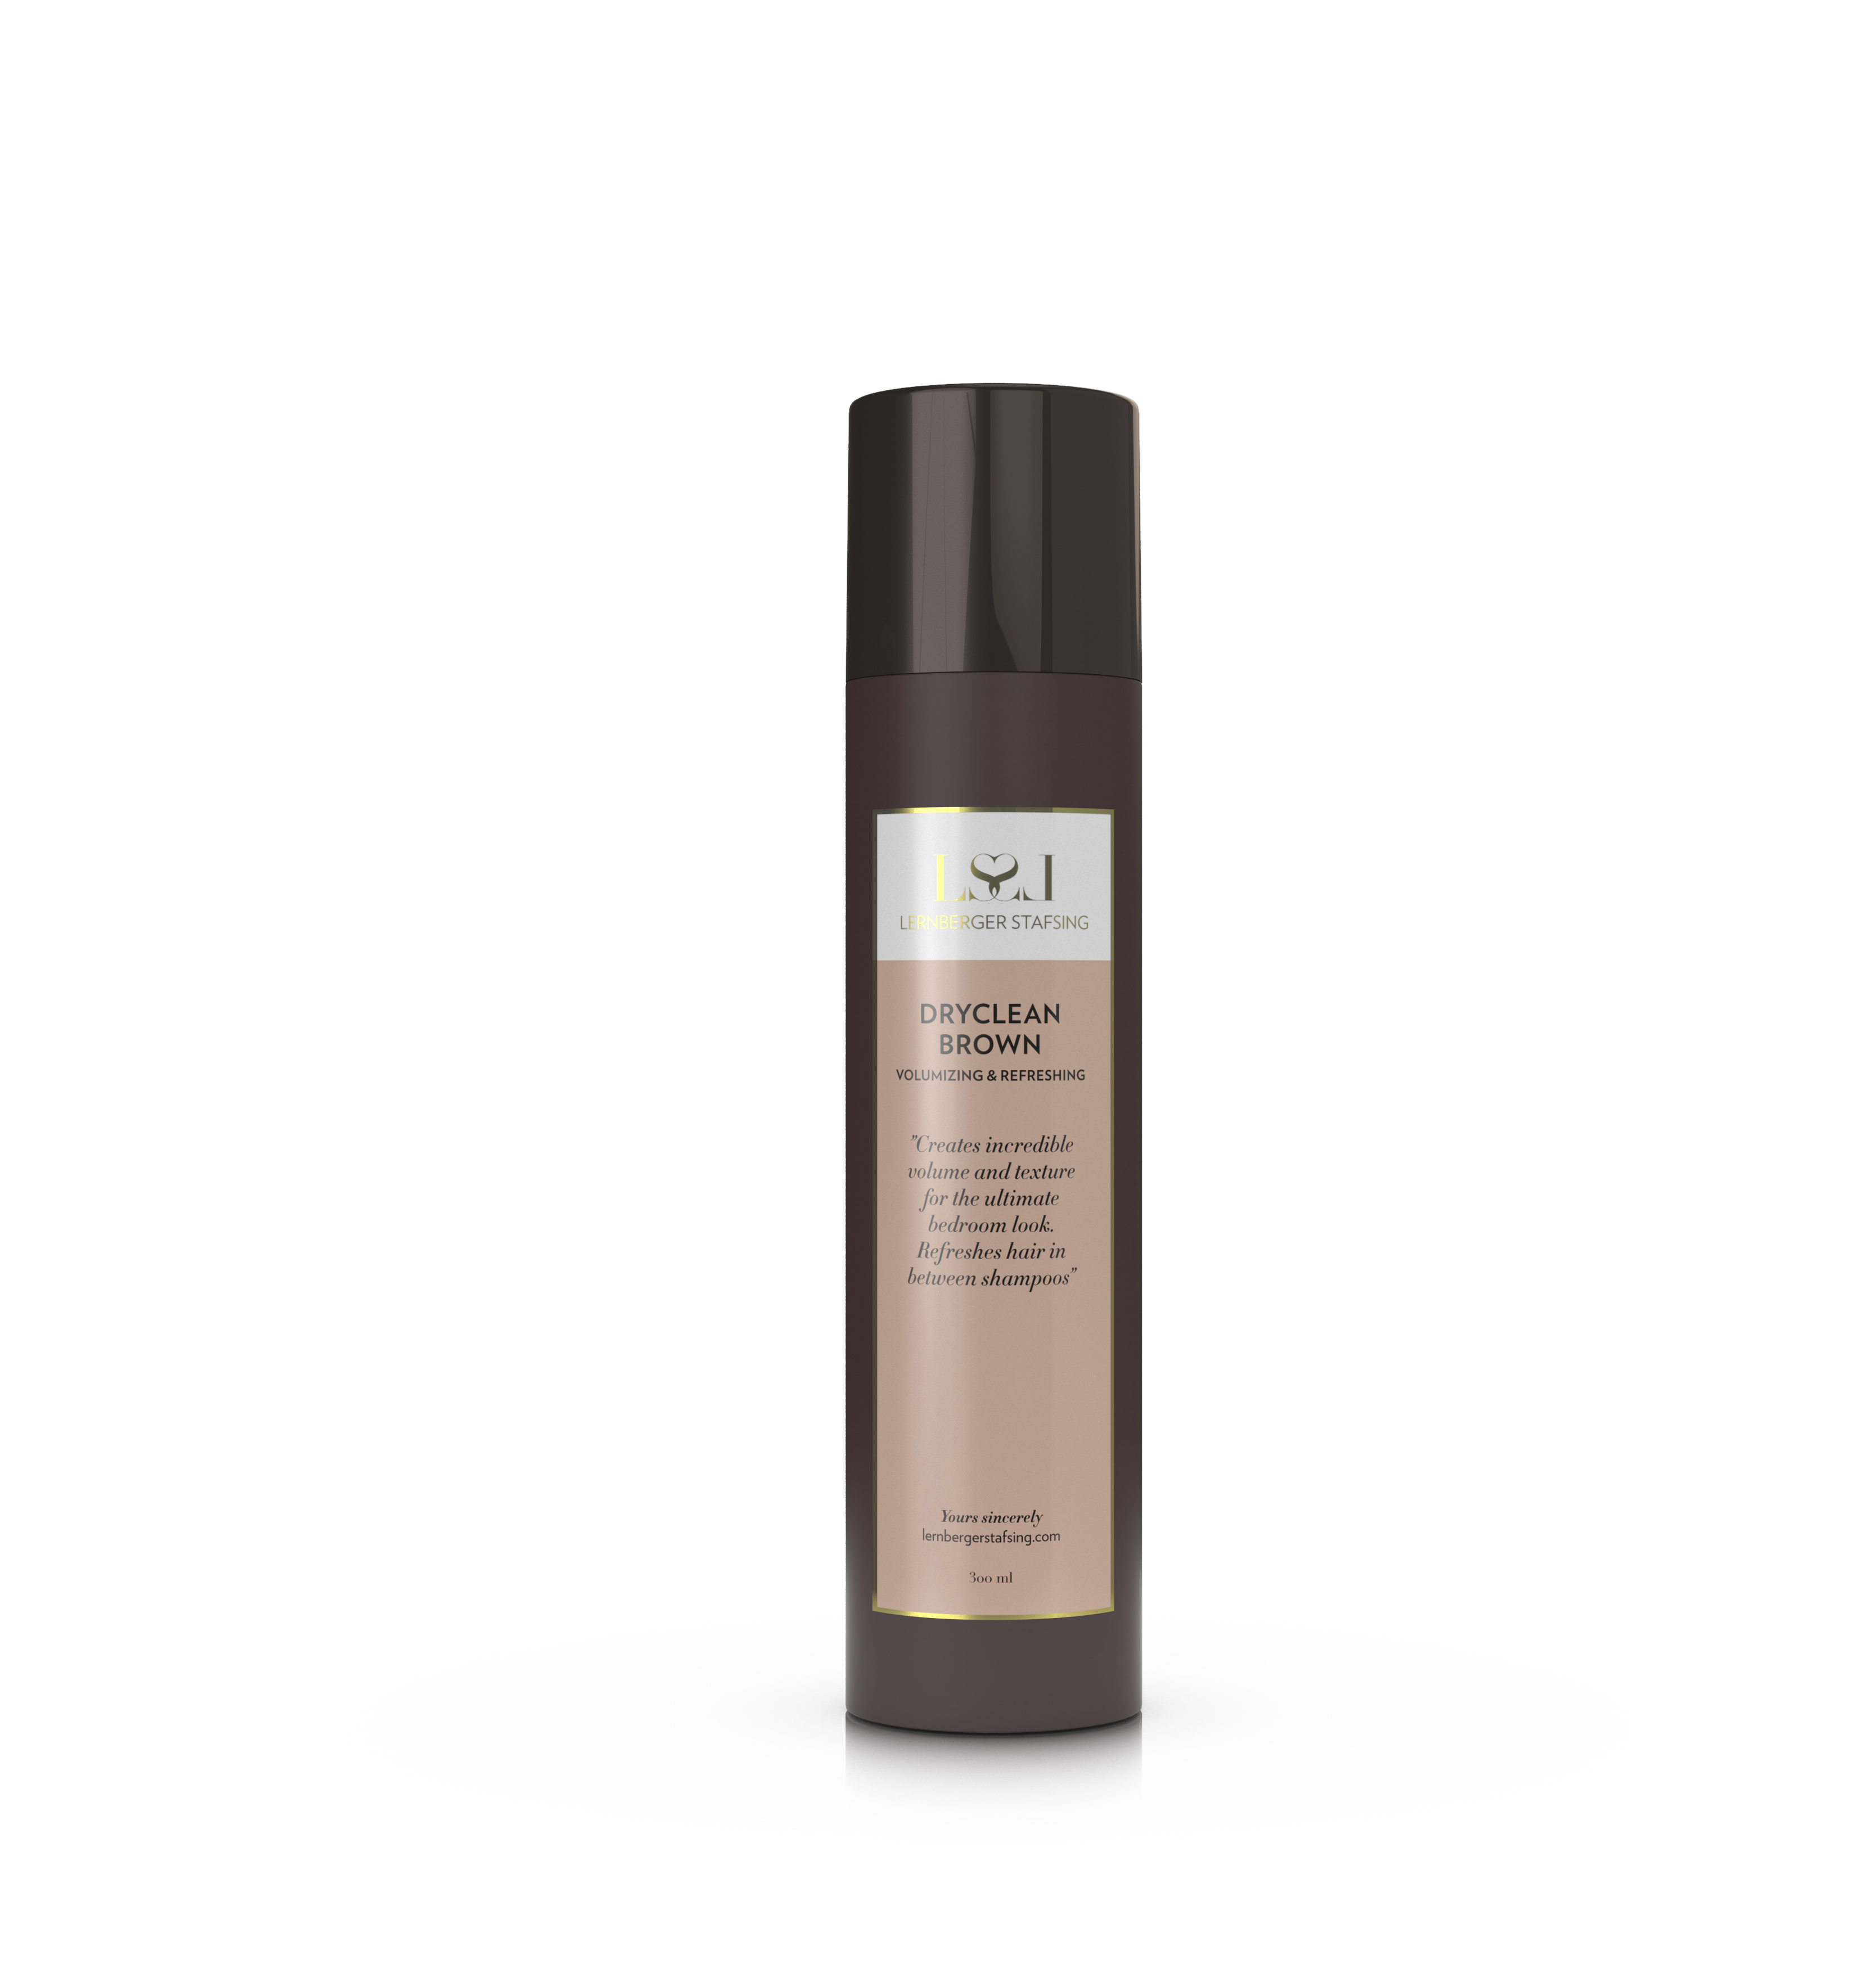 Lernberger Stafsing - Dry Shampoo Dryclean Brown